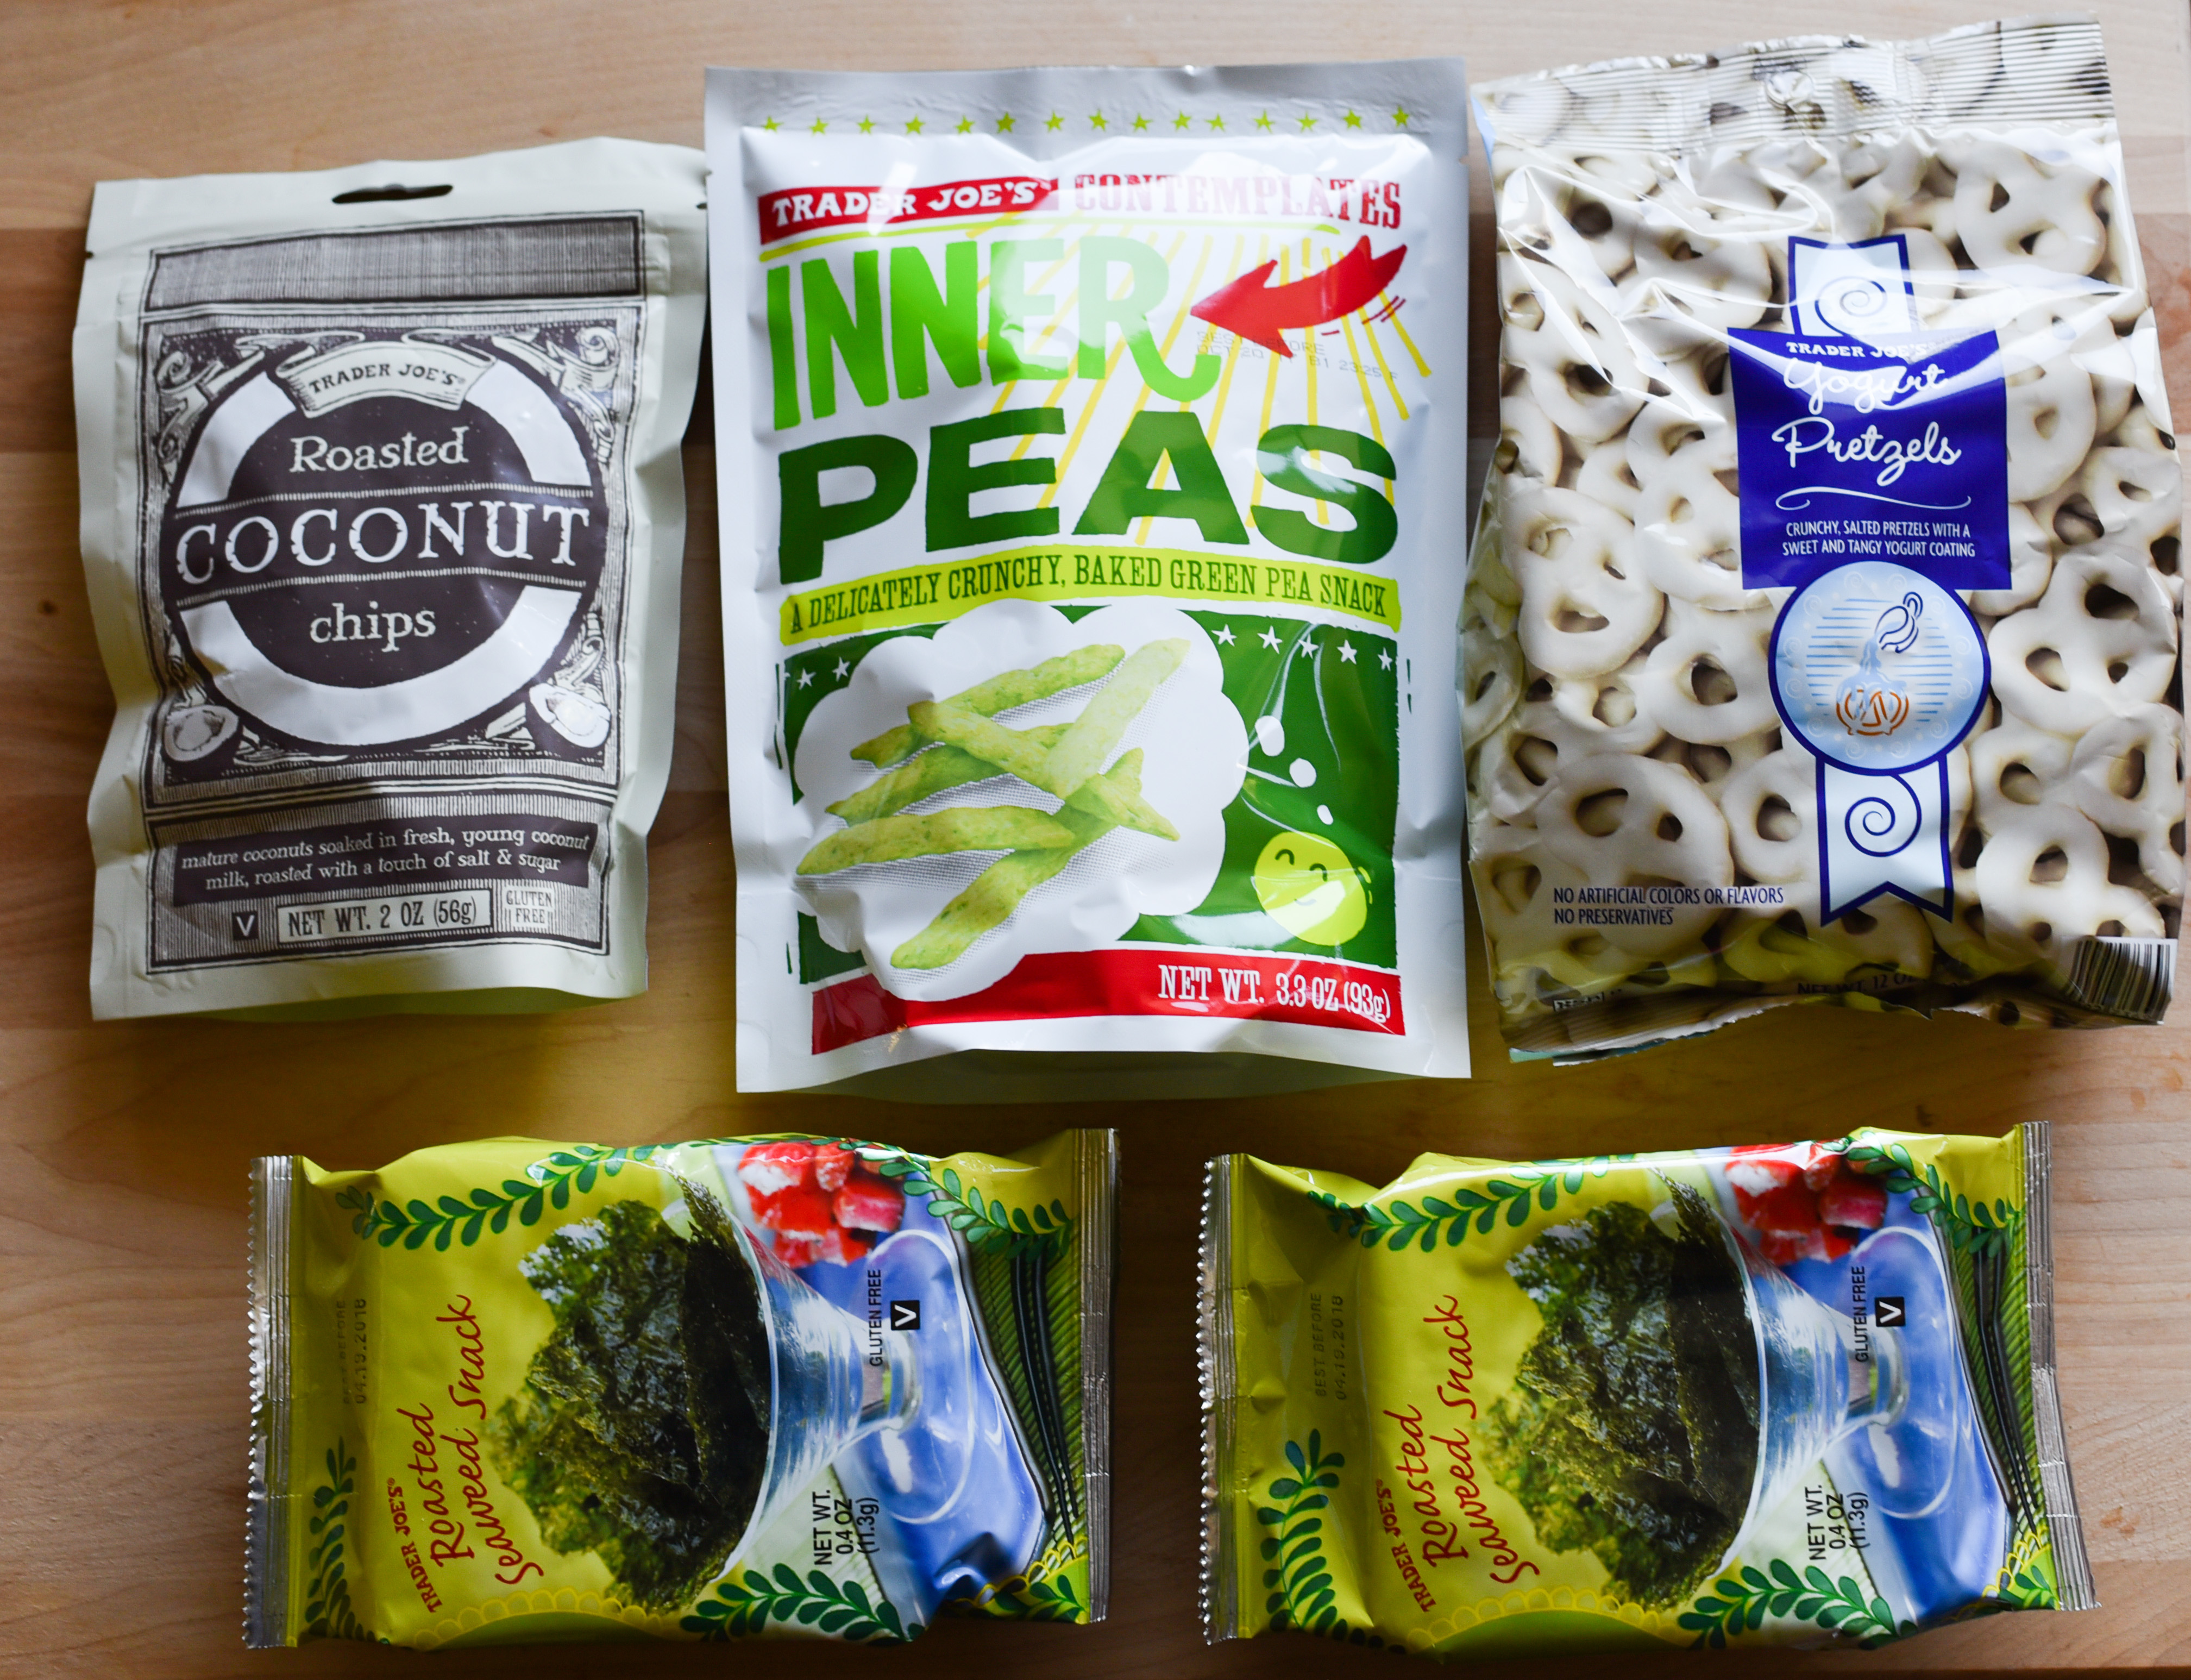 Sometimes you need a crunchy snack while on a long trip but don't want to sacrifice nutrition. Luckily there are some awesome options out there. Grab some coconut chips if you want a slightly sweet crunch or dried peas for a saltier crunch. Yogurt covered pretzels are a great combination of sweet and salty. Dried seaweed is an great choice for a nutritious salty snack.  (Image: Rebecca Mongrain/Seattle Refined)